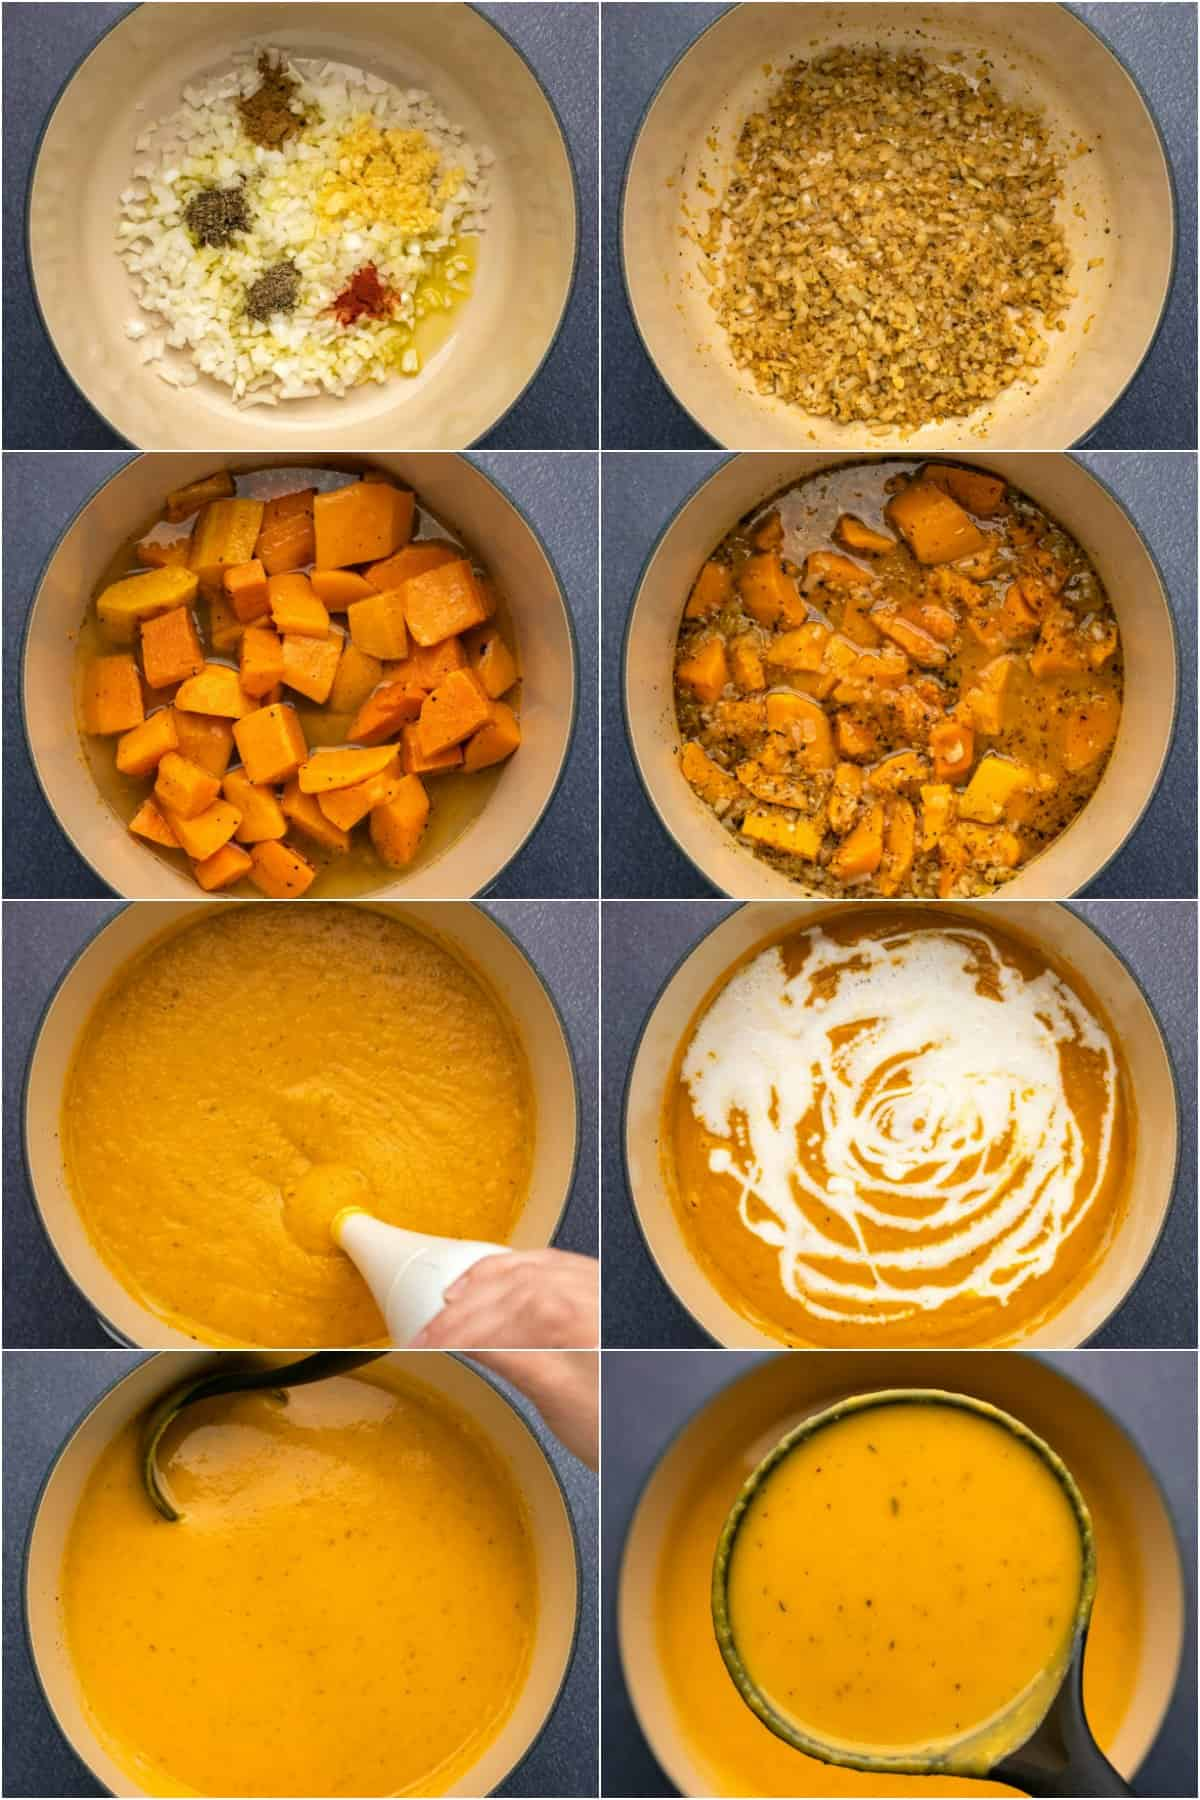 Step by step process photo collage of making roasted butternut squash soup.